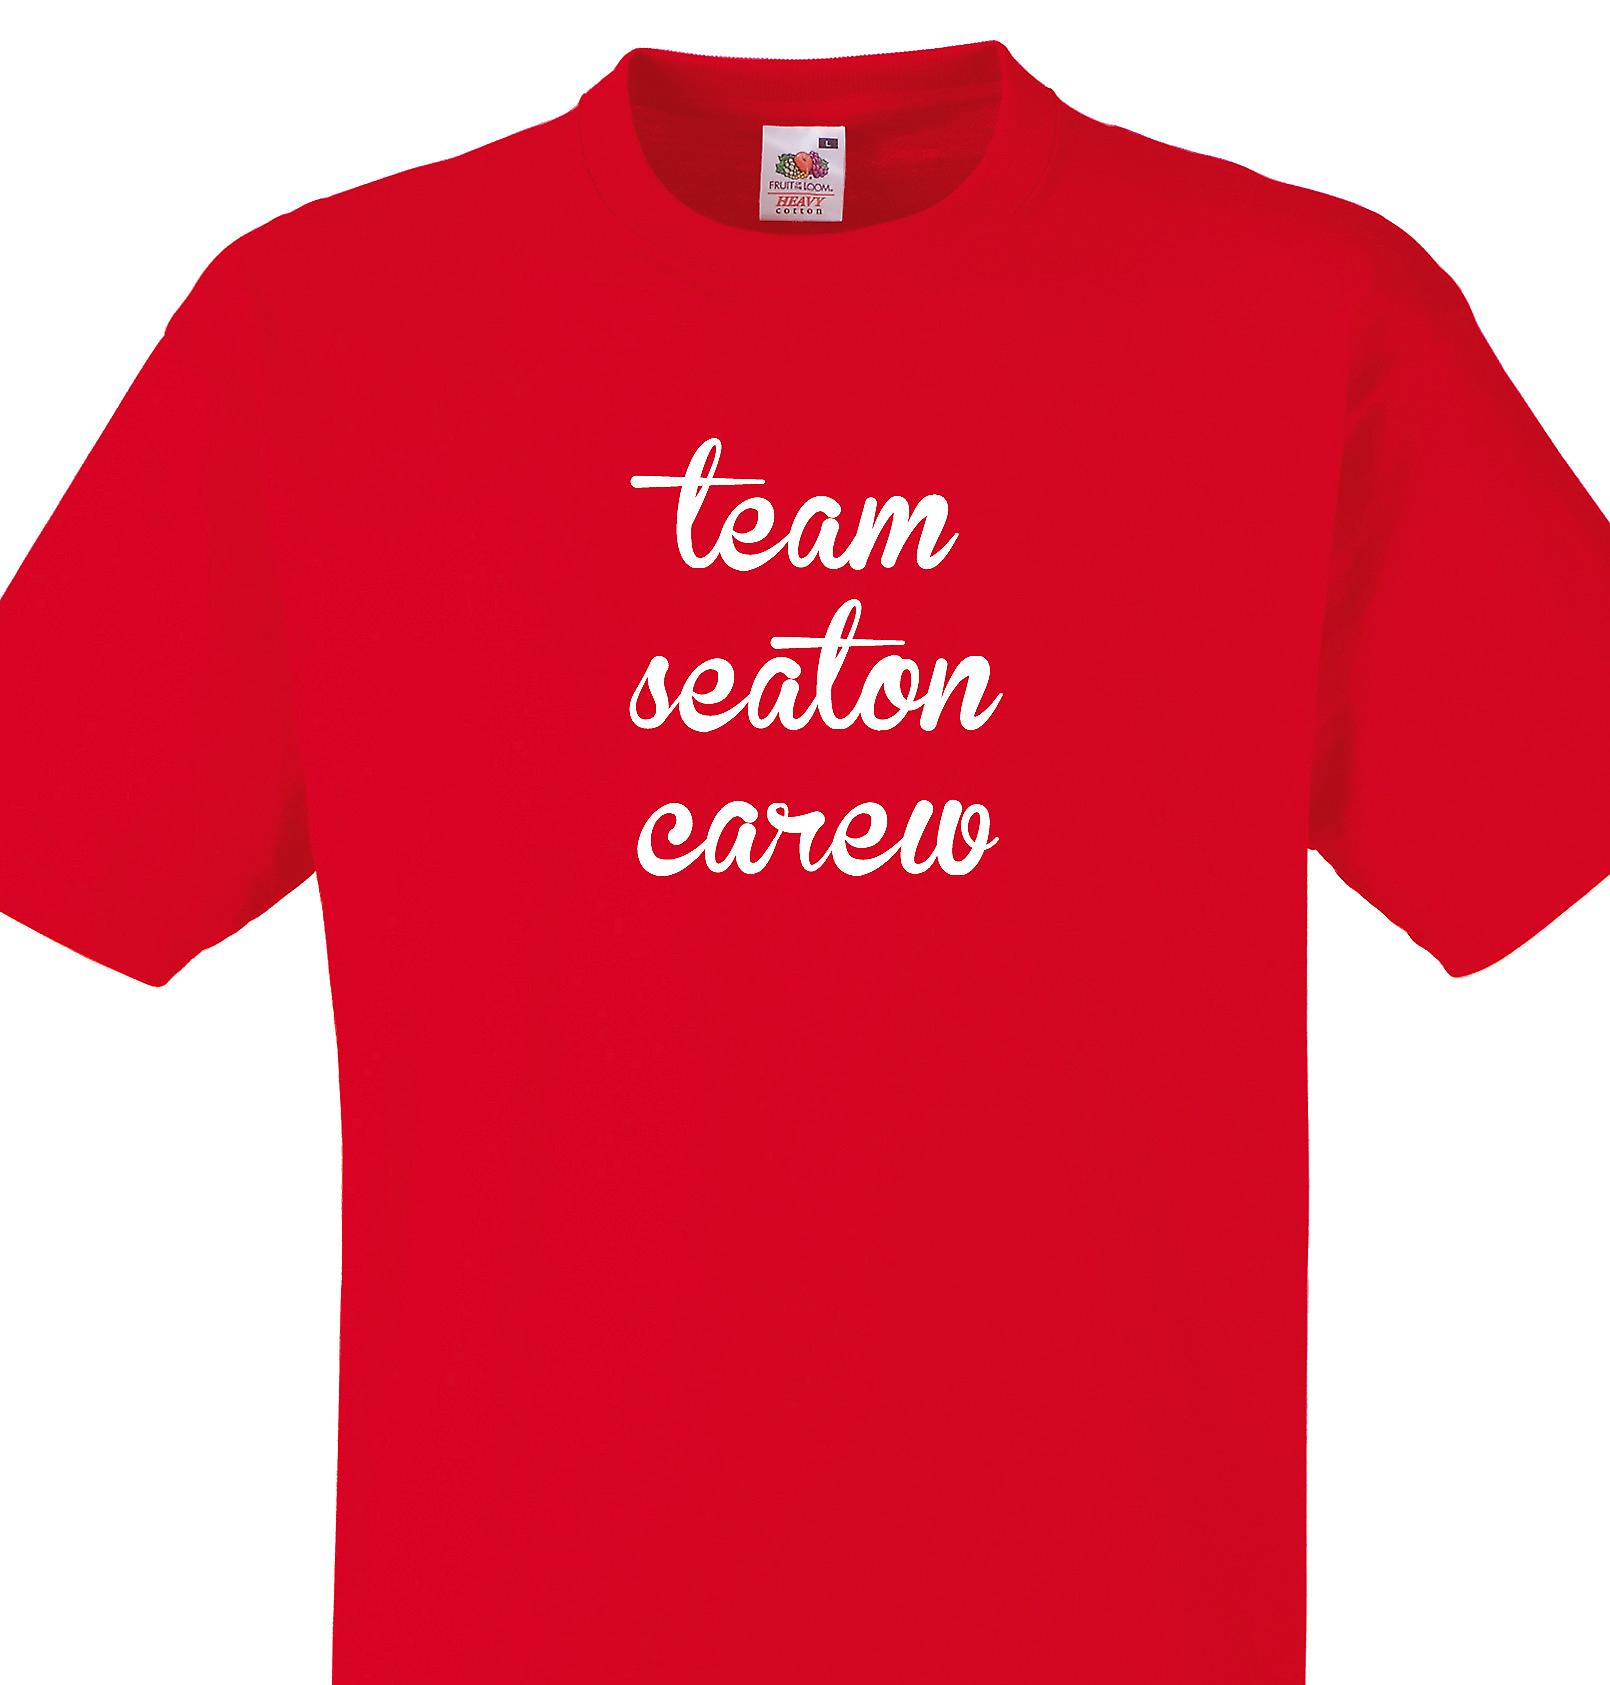 Team Seaton carew Red T shirt